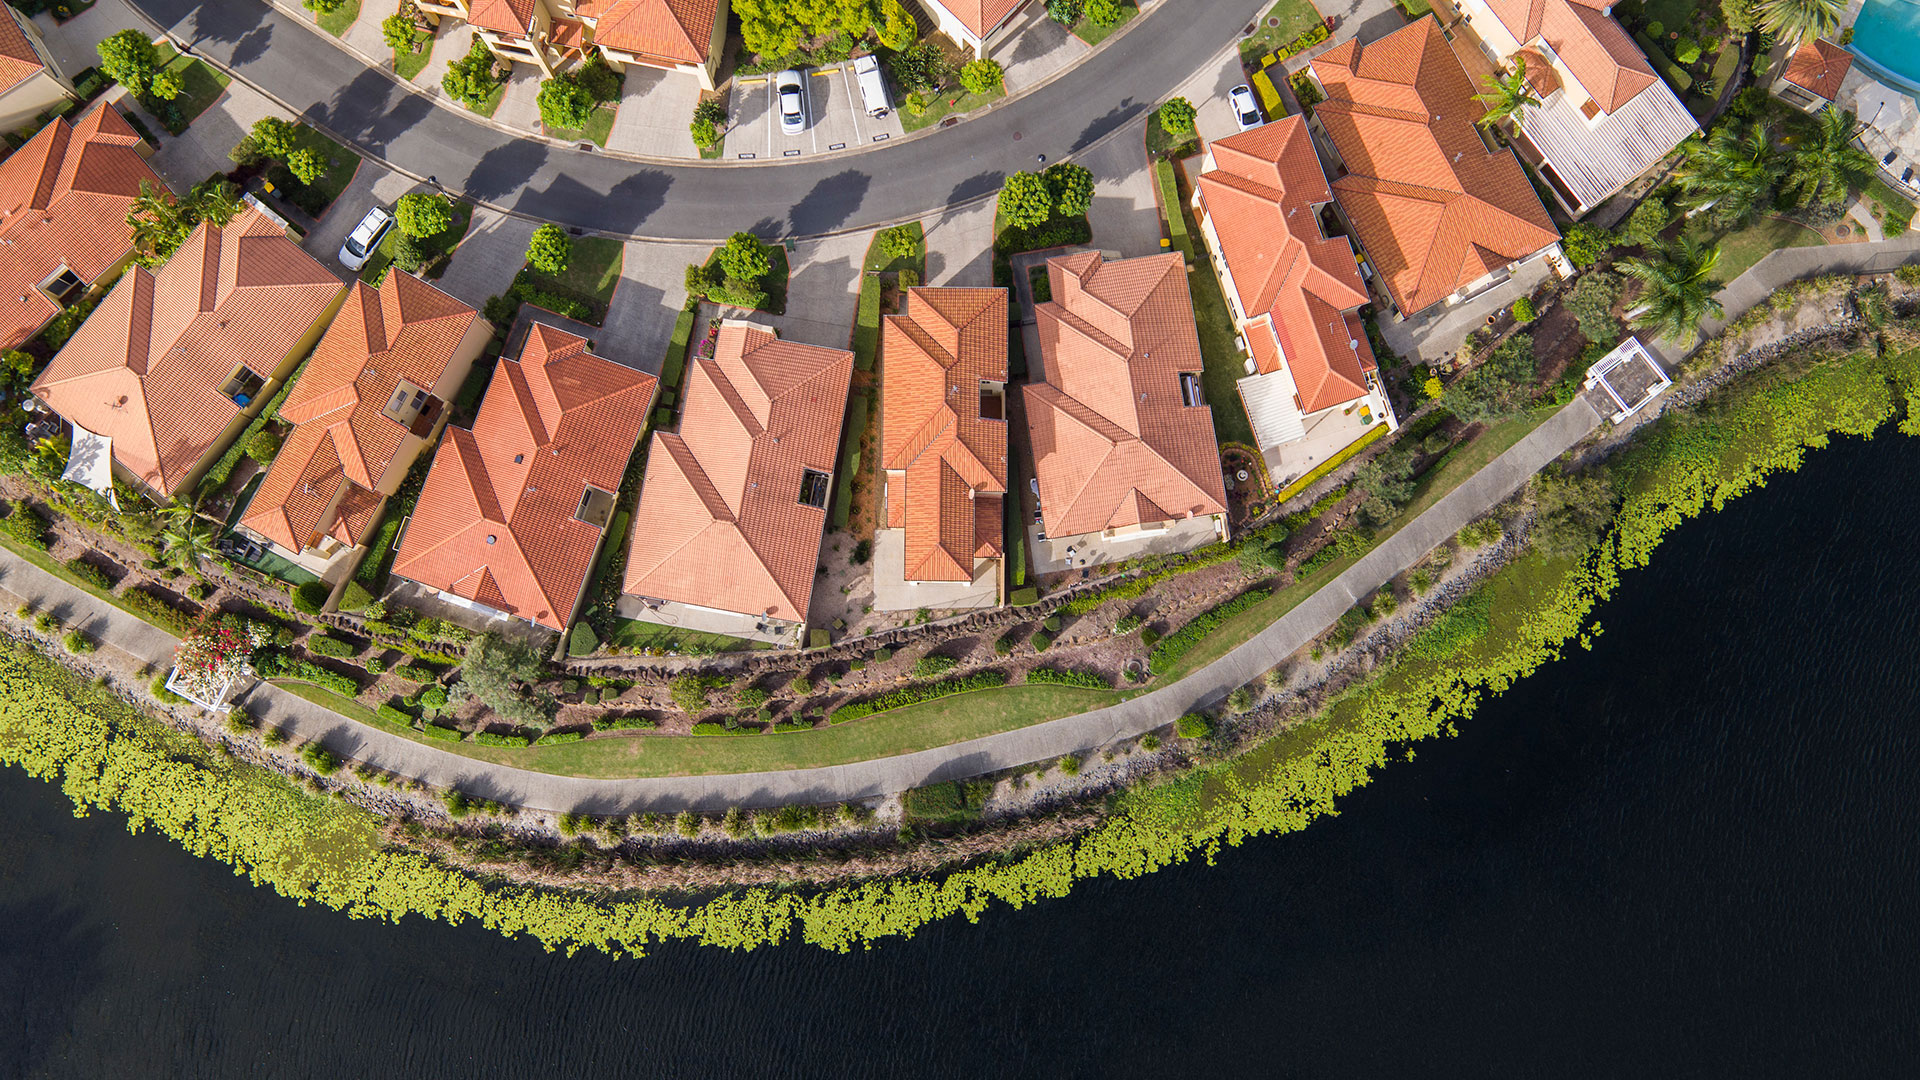 Aerial drone photography for real estate sales at Robina.